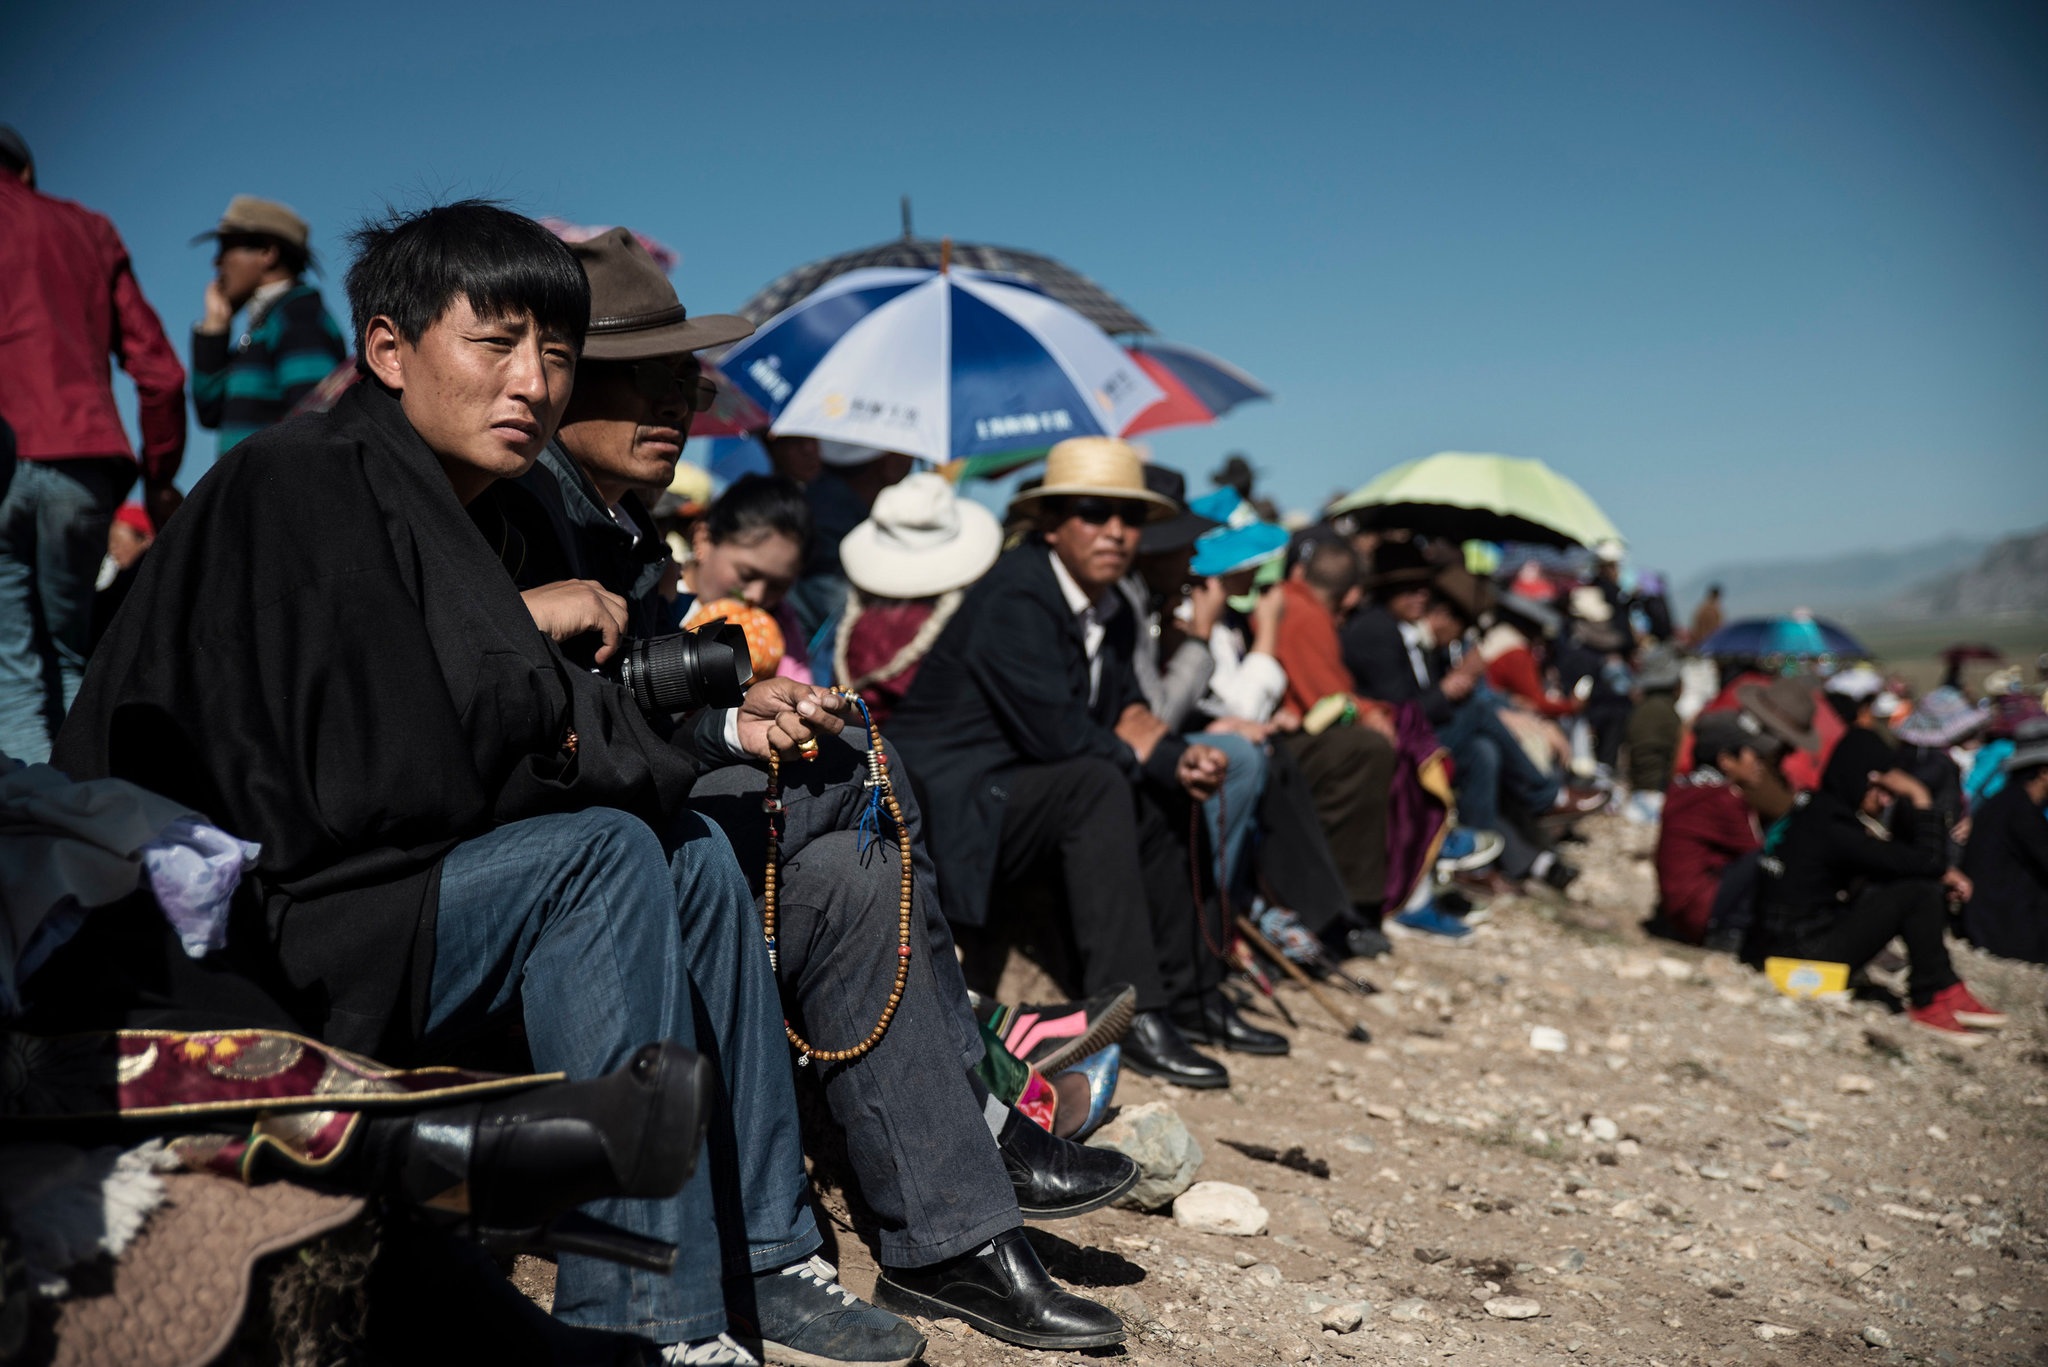 Tashi Wangchuk, a Tibetan entrepreneur, at a horse festival in Yushu, a Tibetan area of Qinghai Province, China, last year. He is illegally detained by the police for over a month. (Photo courtesy: Gilles Sabrie/The New York Times)